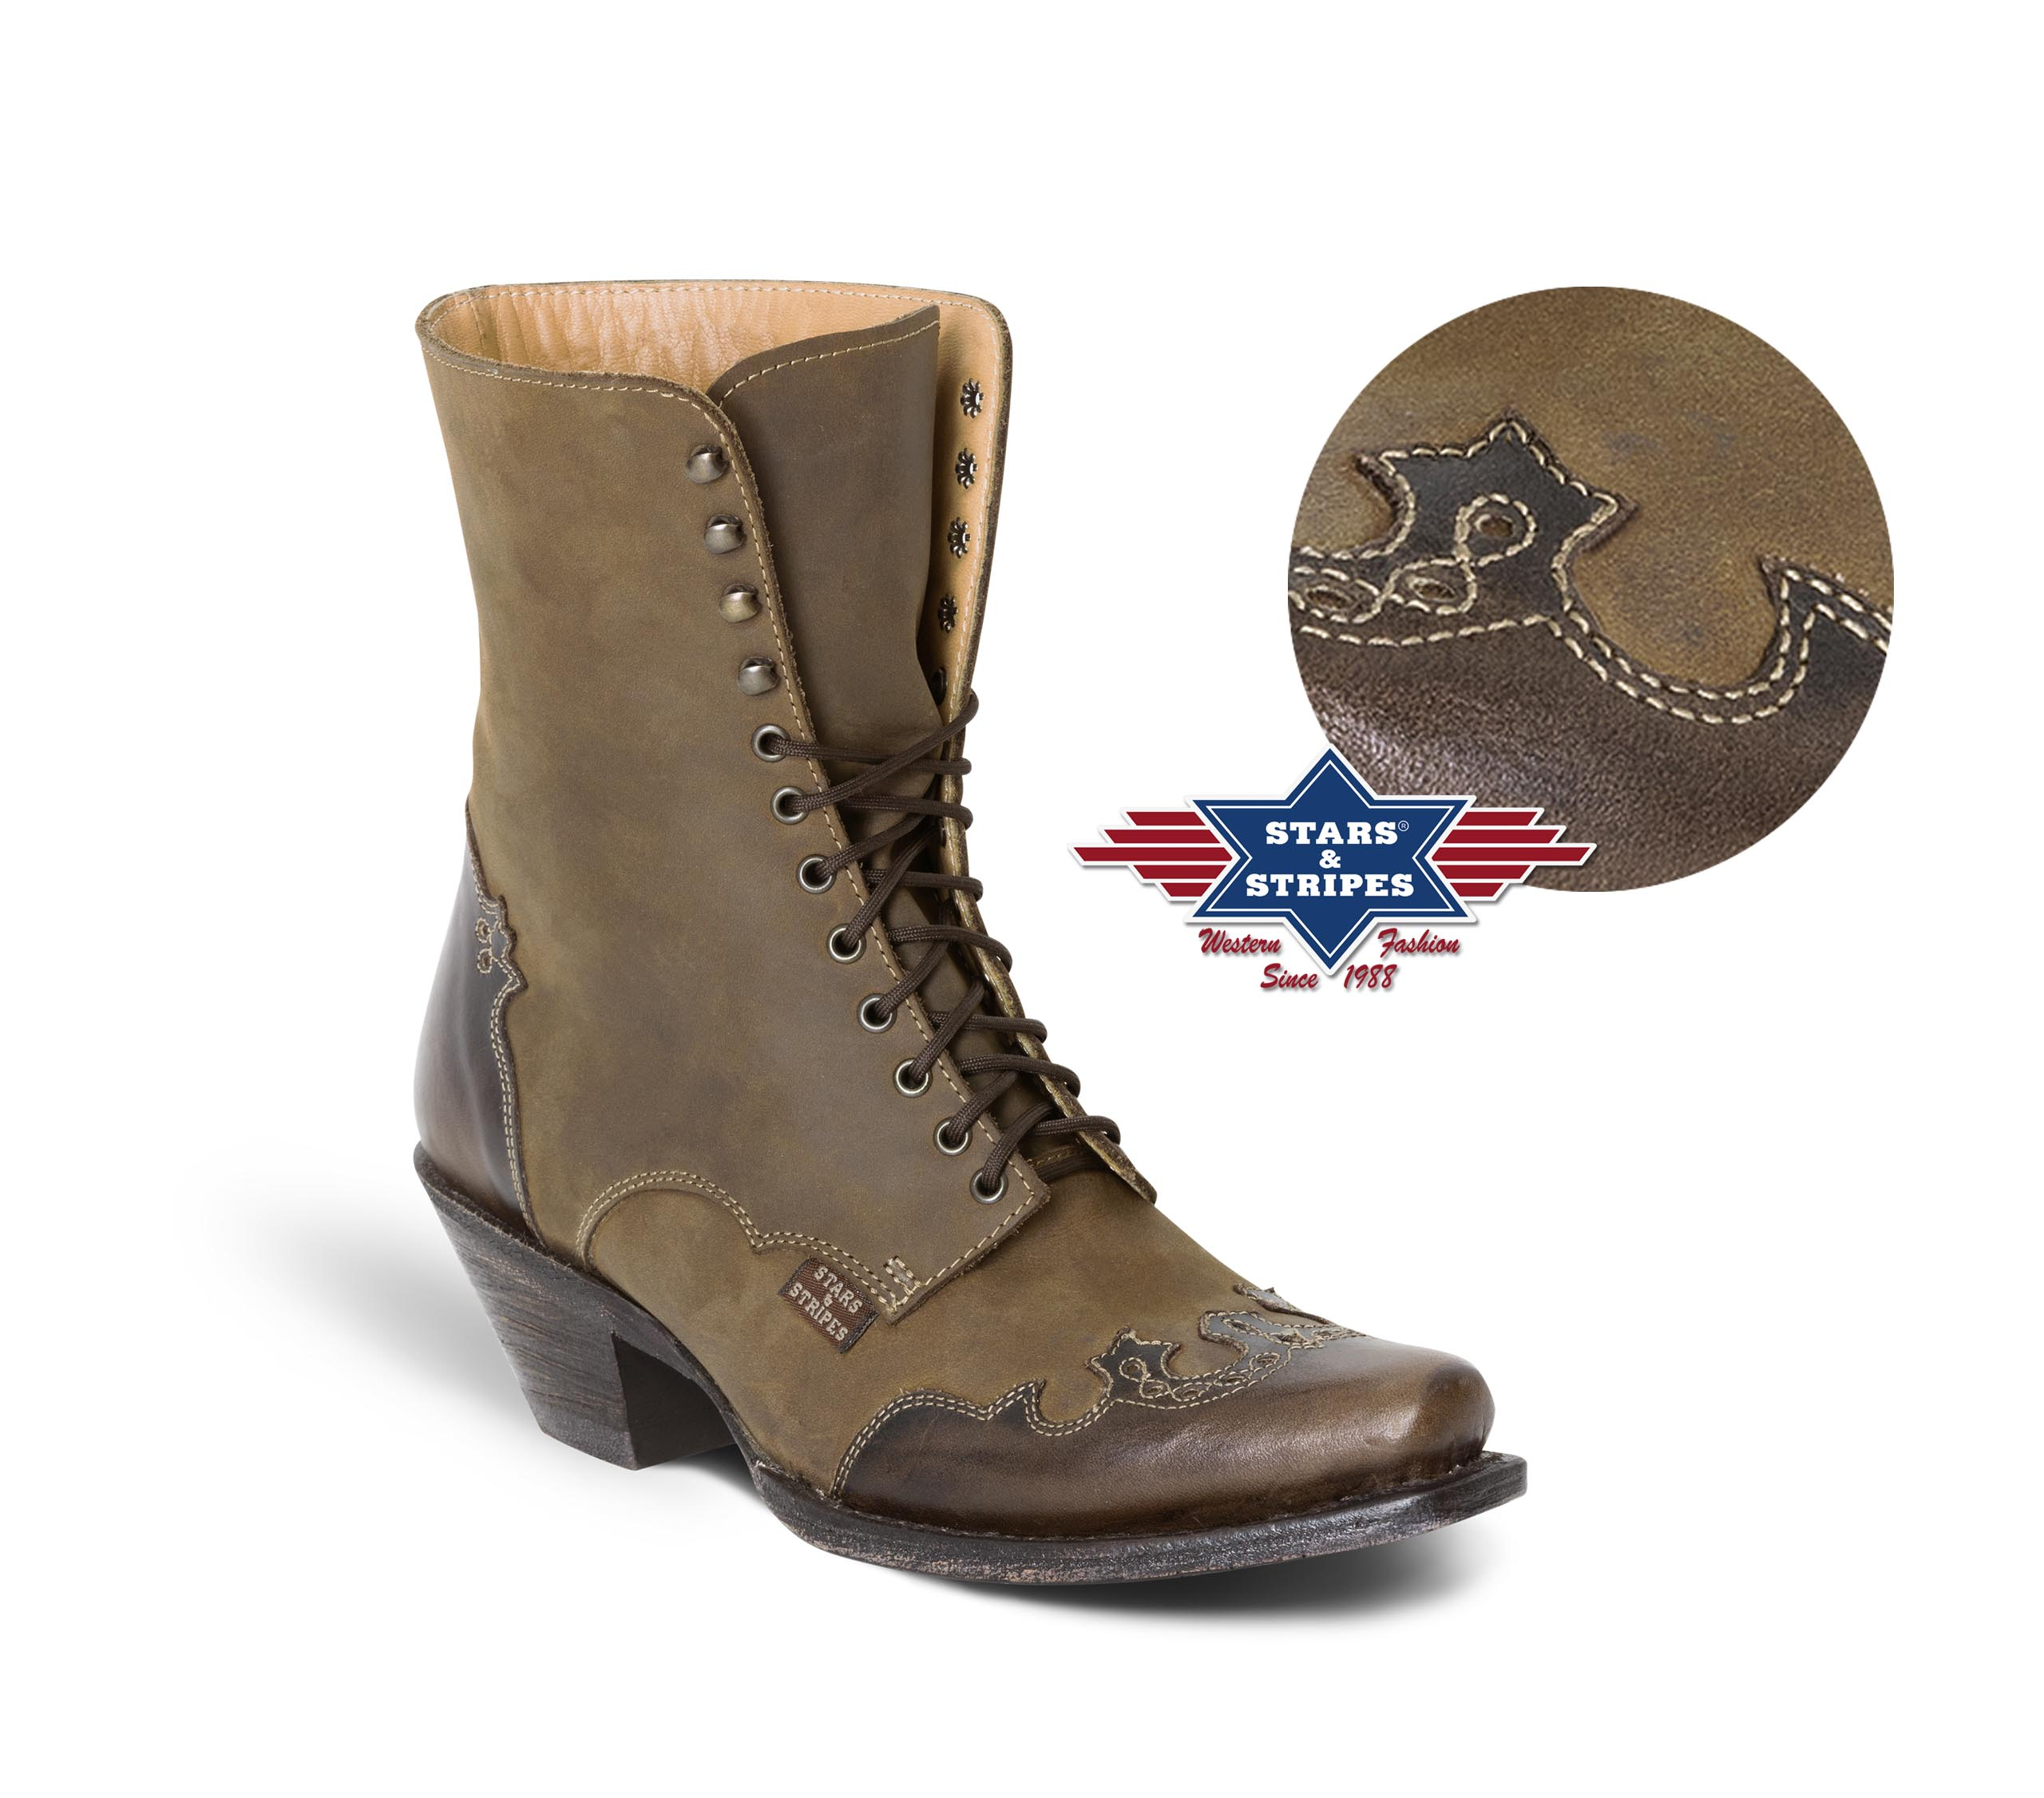 Stivali bassi in pelle Stars & Stripes brown con lacci